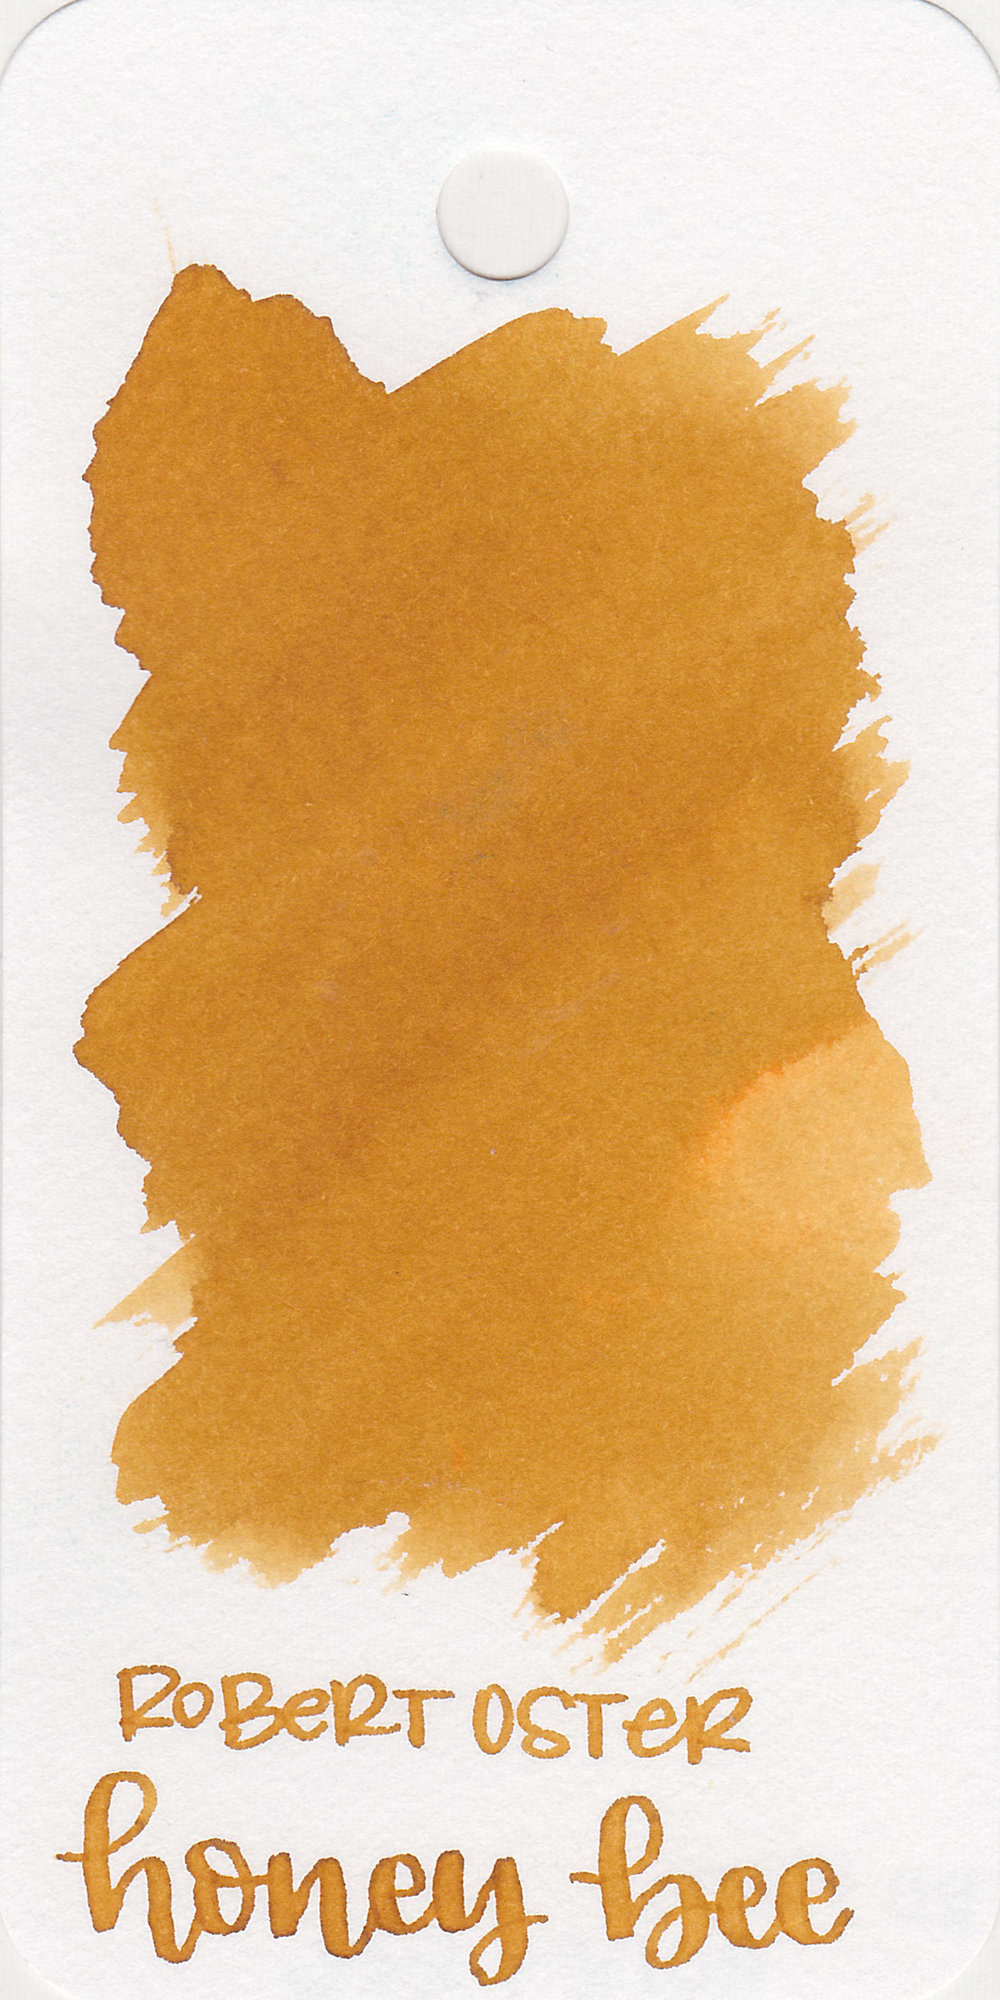 The color: - Honey Bee is a medium, mustard yellow. It's somewhere between yellow and brown, the color of honeycombs.